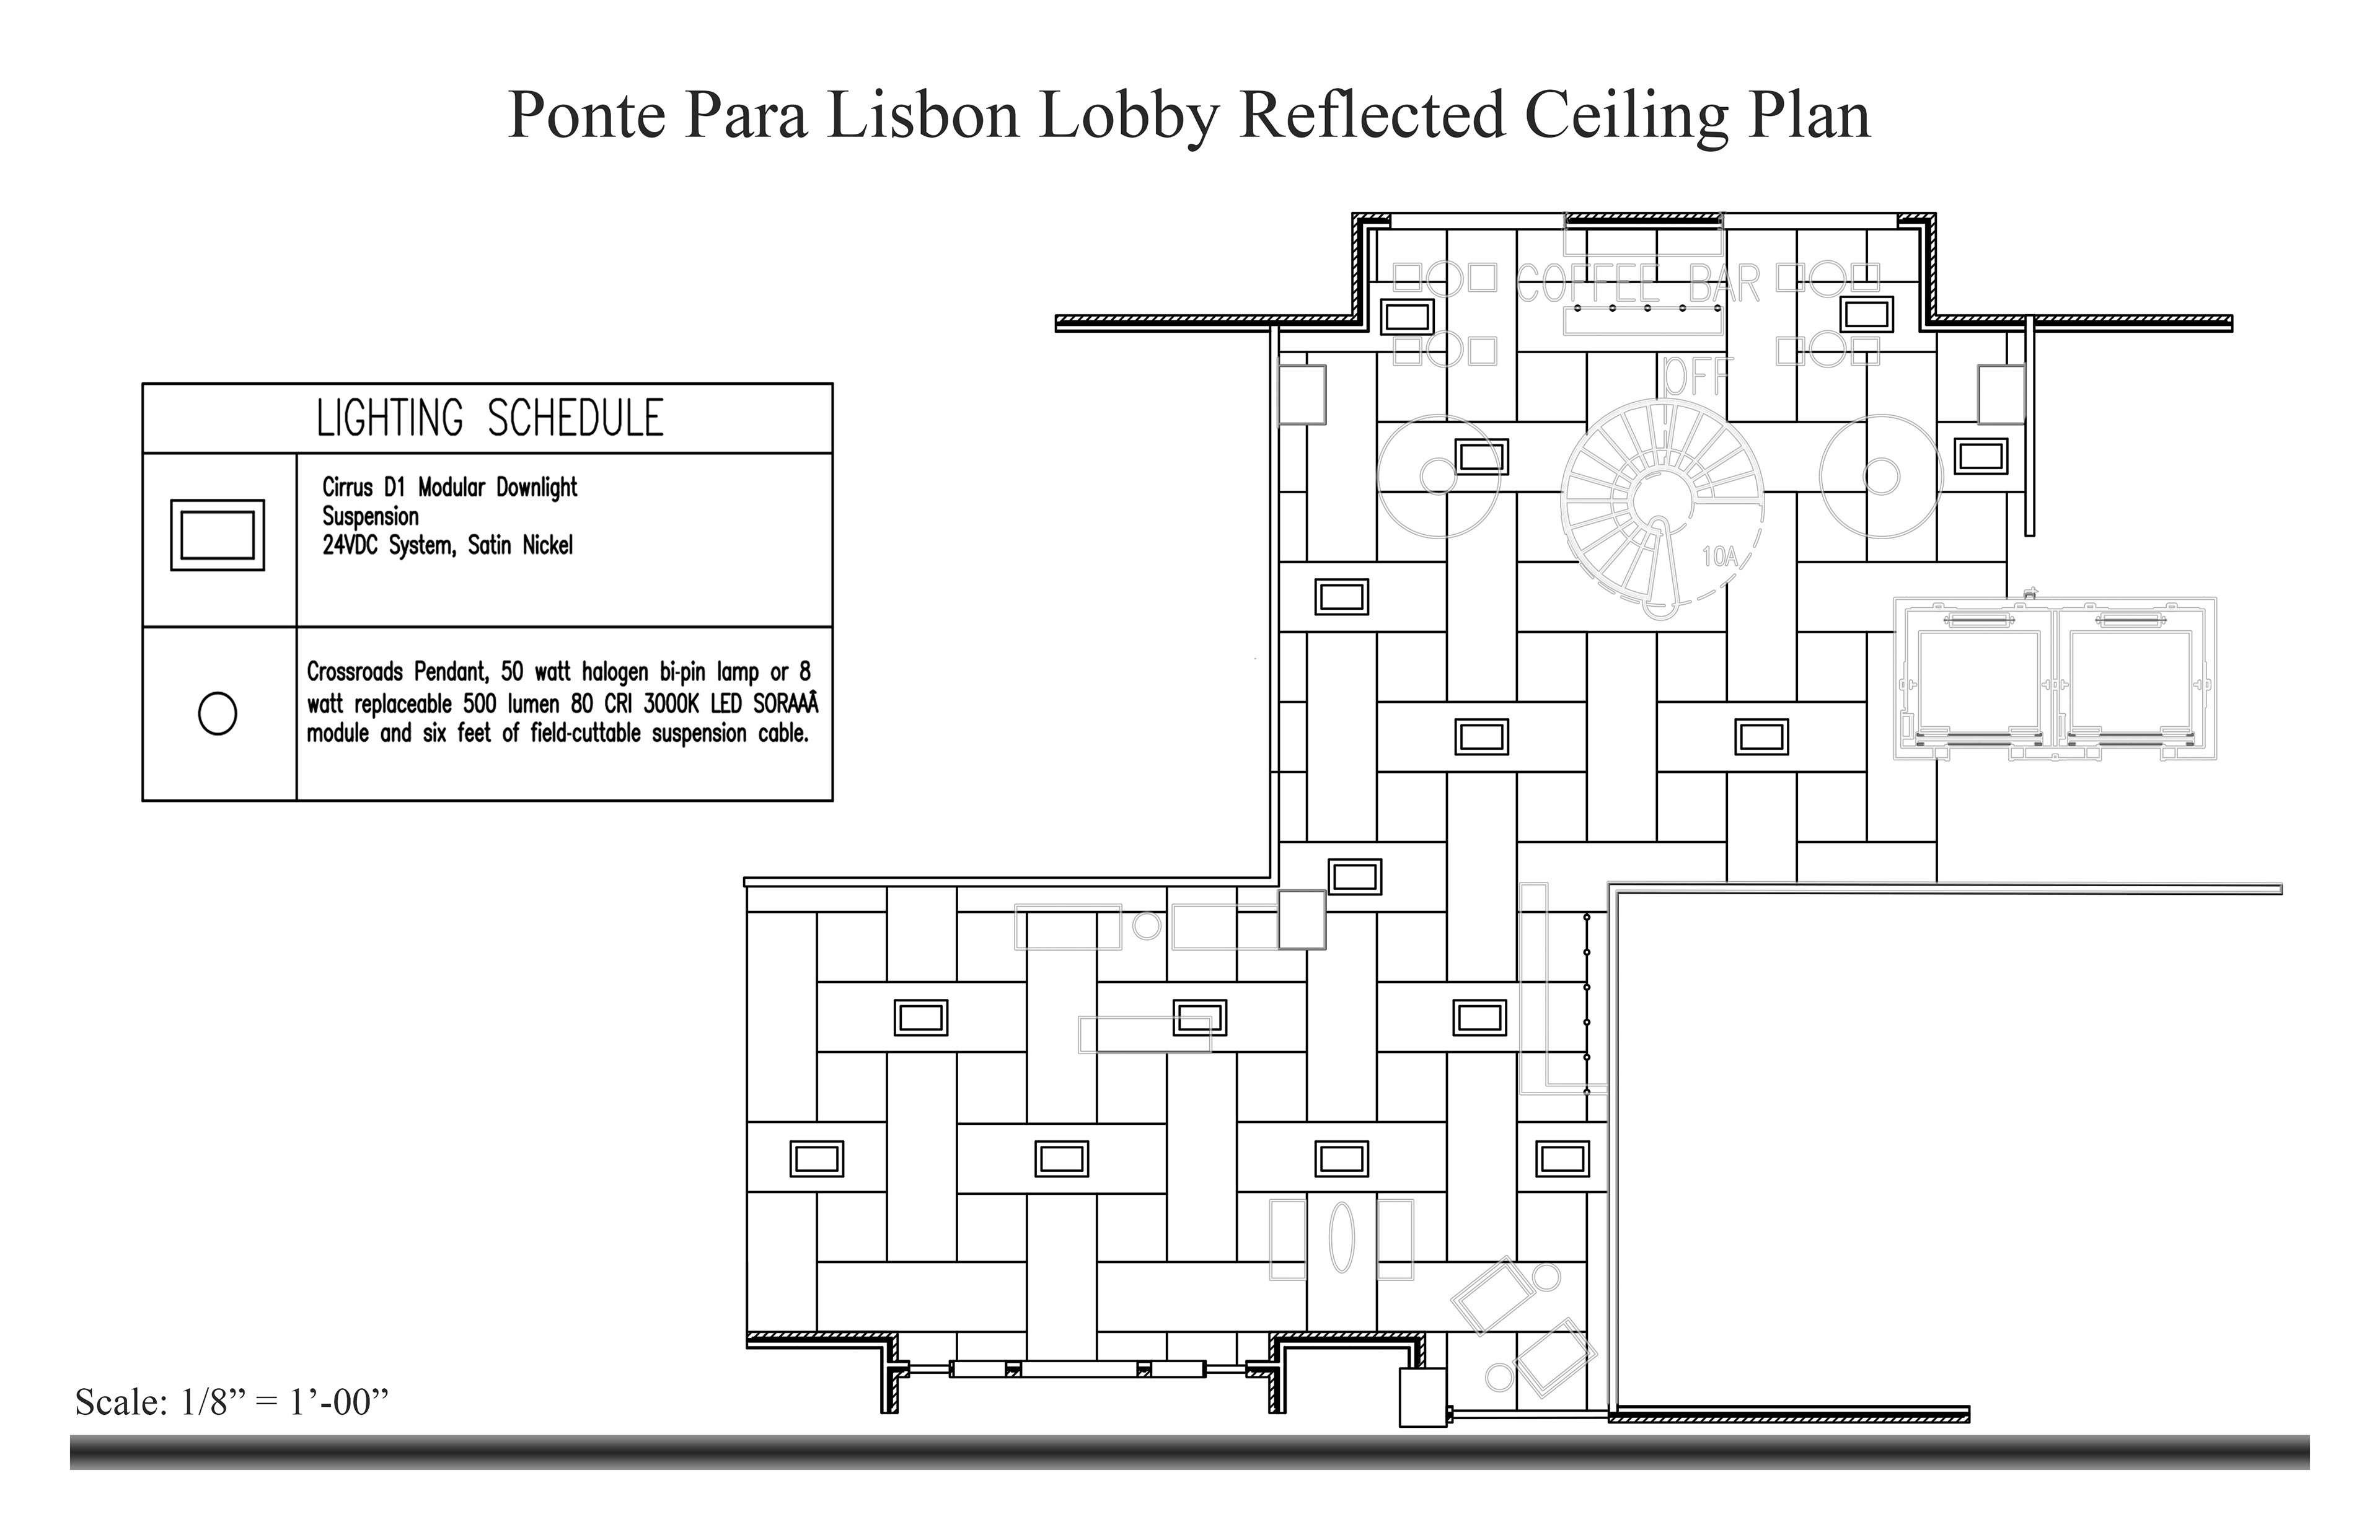 electrical plan vs reflected ceiling plan